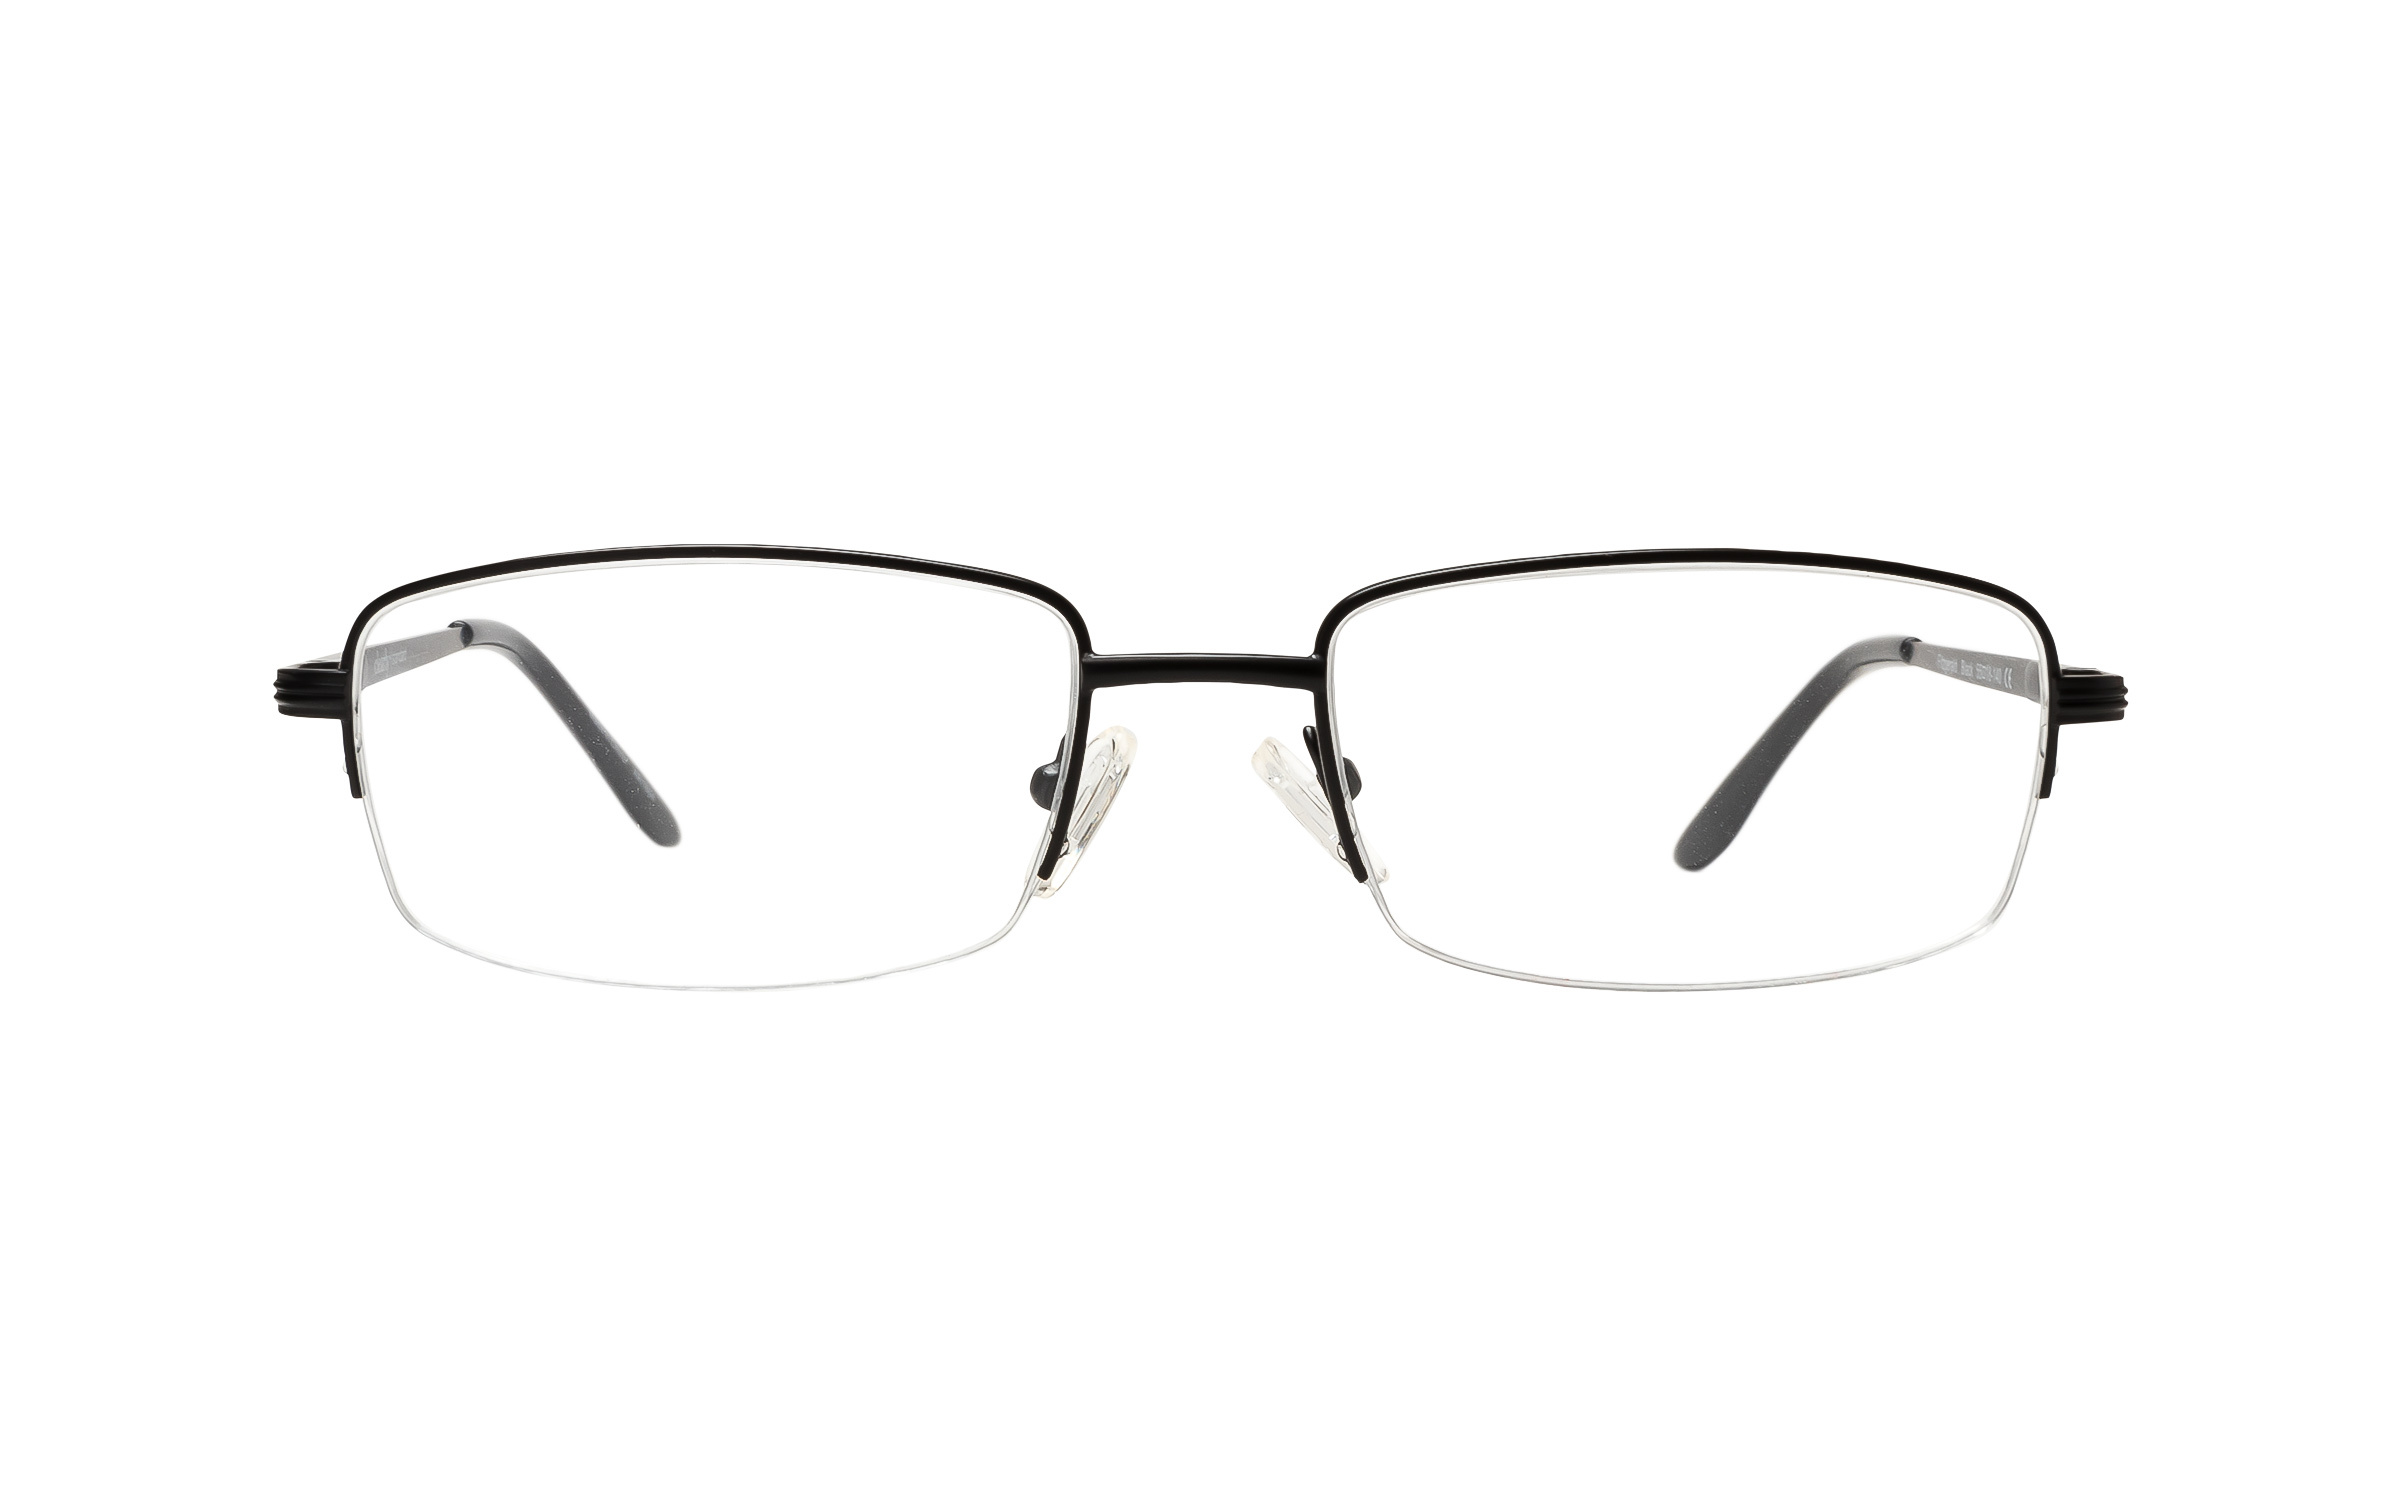 Clearly Basics Fitzgerald (55) Eyeglasses and Frame in Black - Online